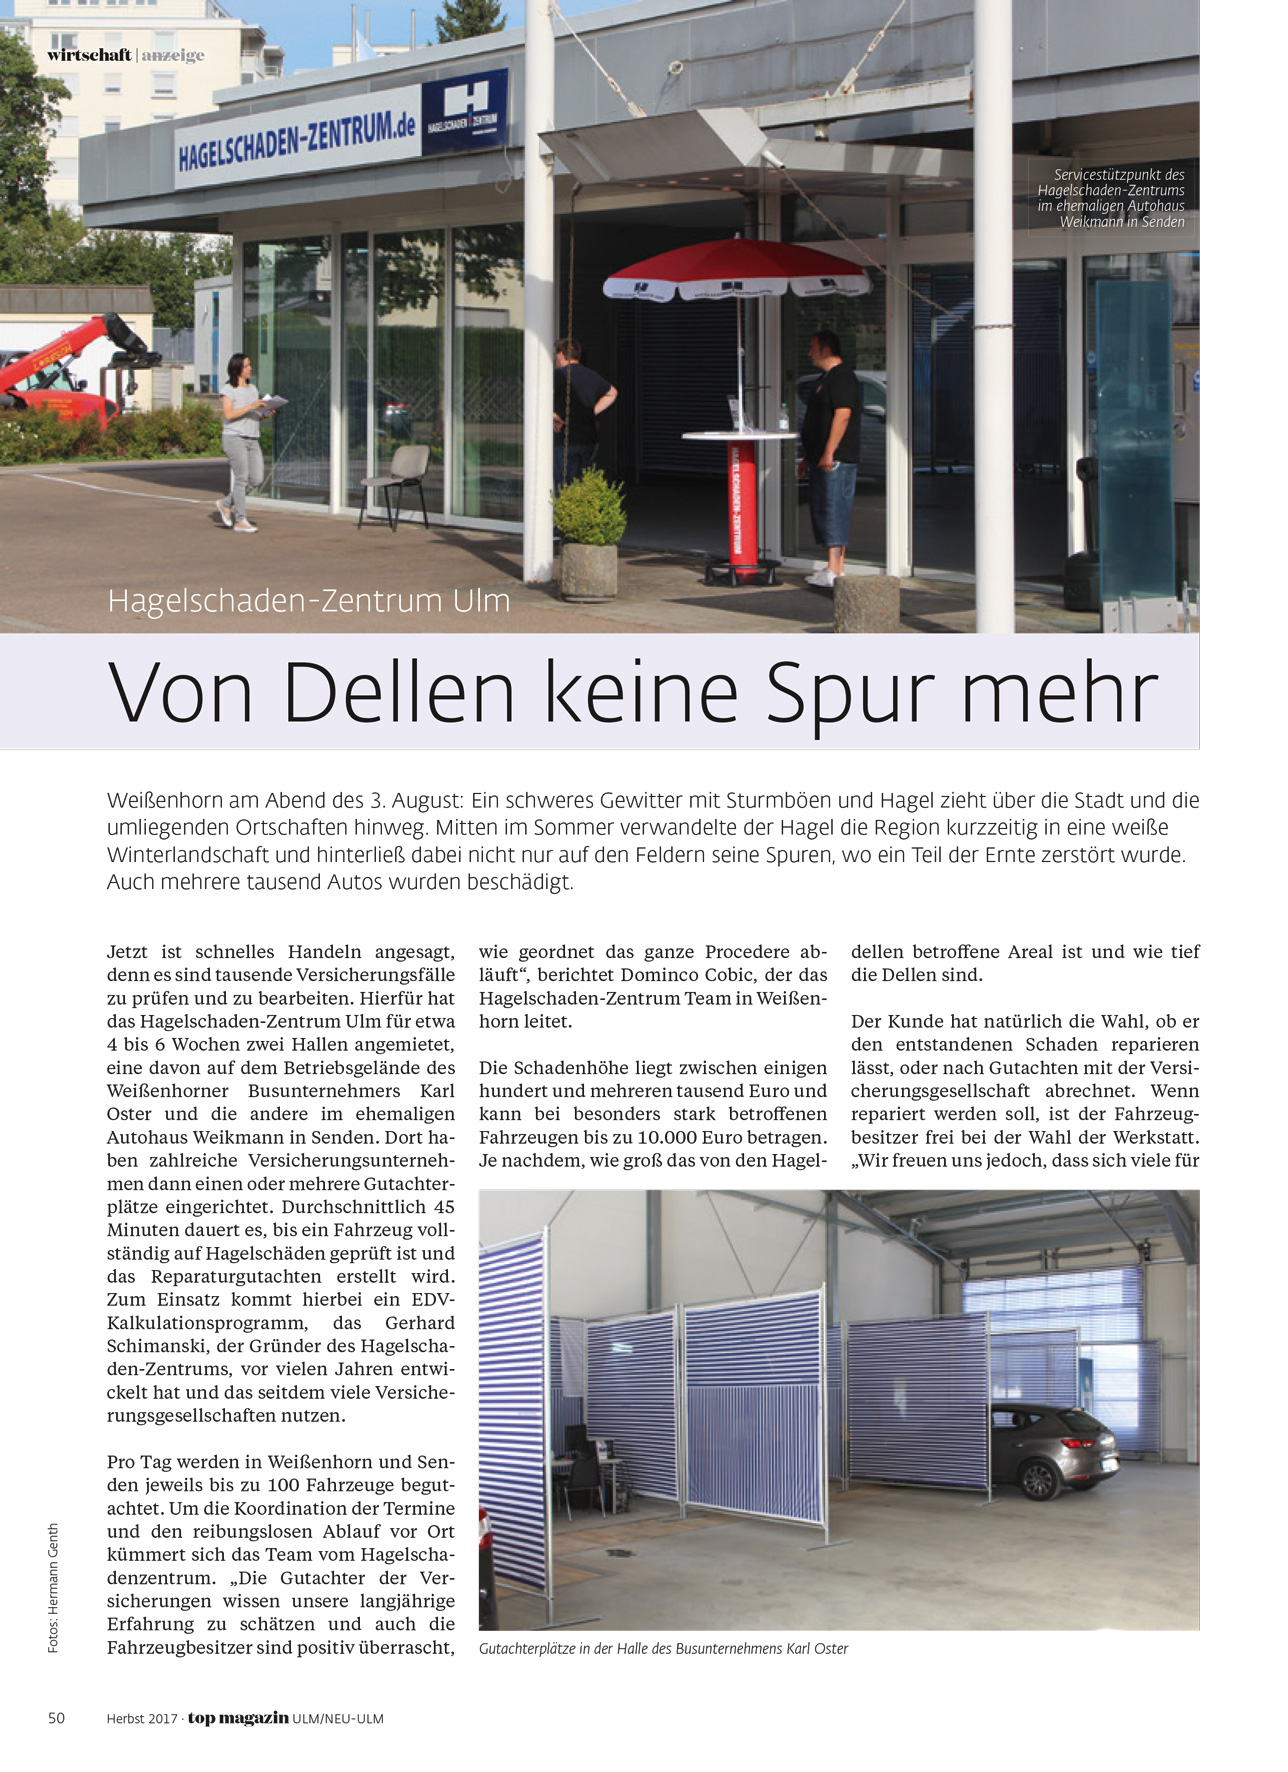 hsz-top-magazin-03-2017-1